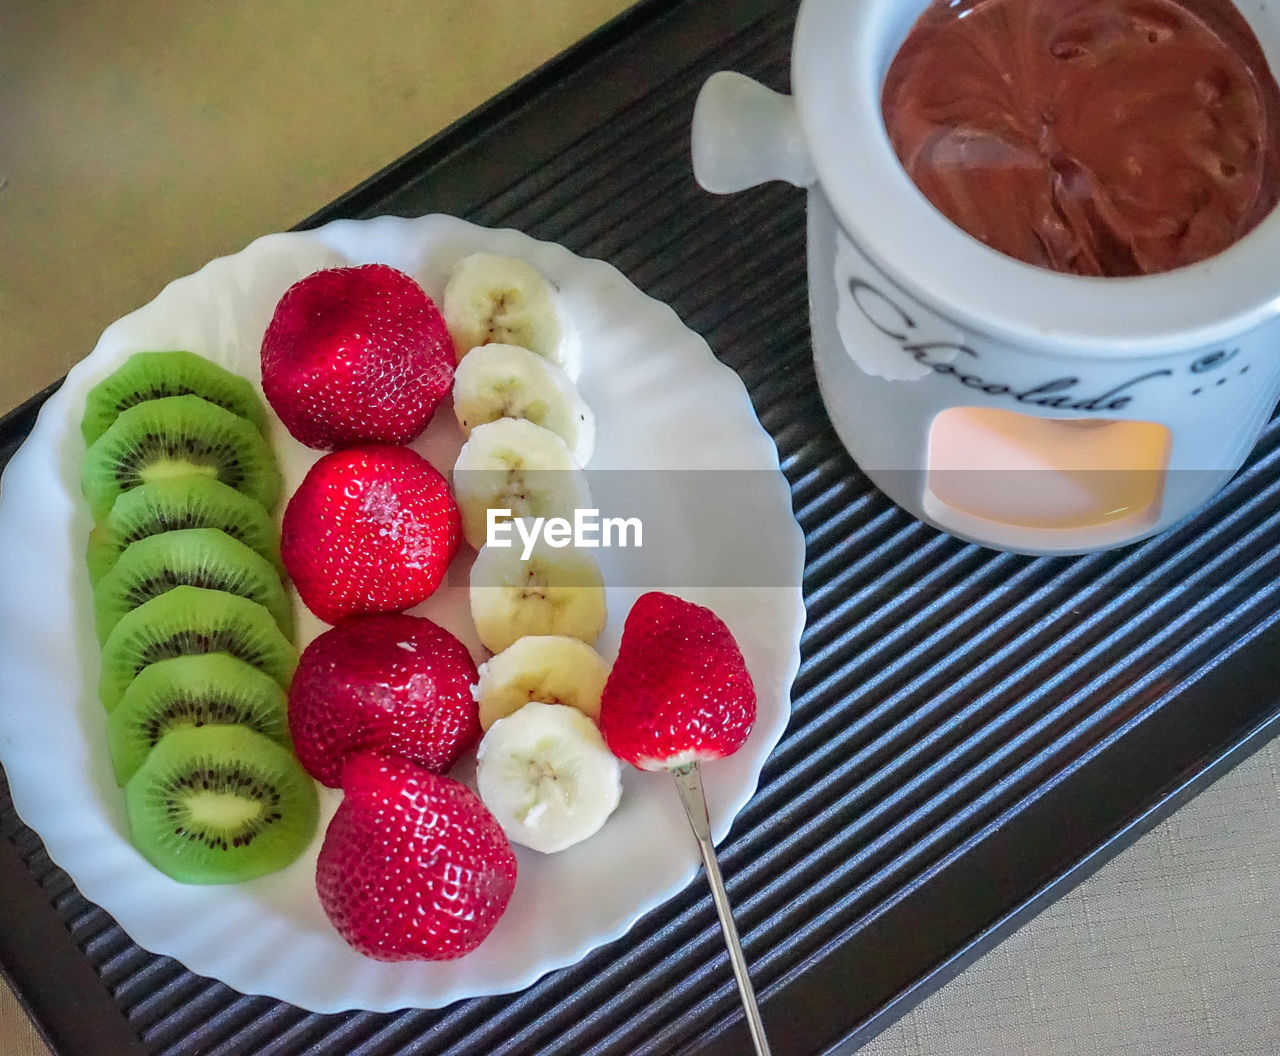 HIGH ANGLE VIEW OF FRUITS IN PLATE ON TABLE